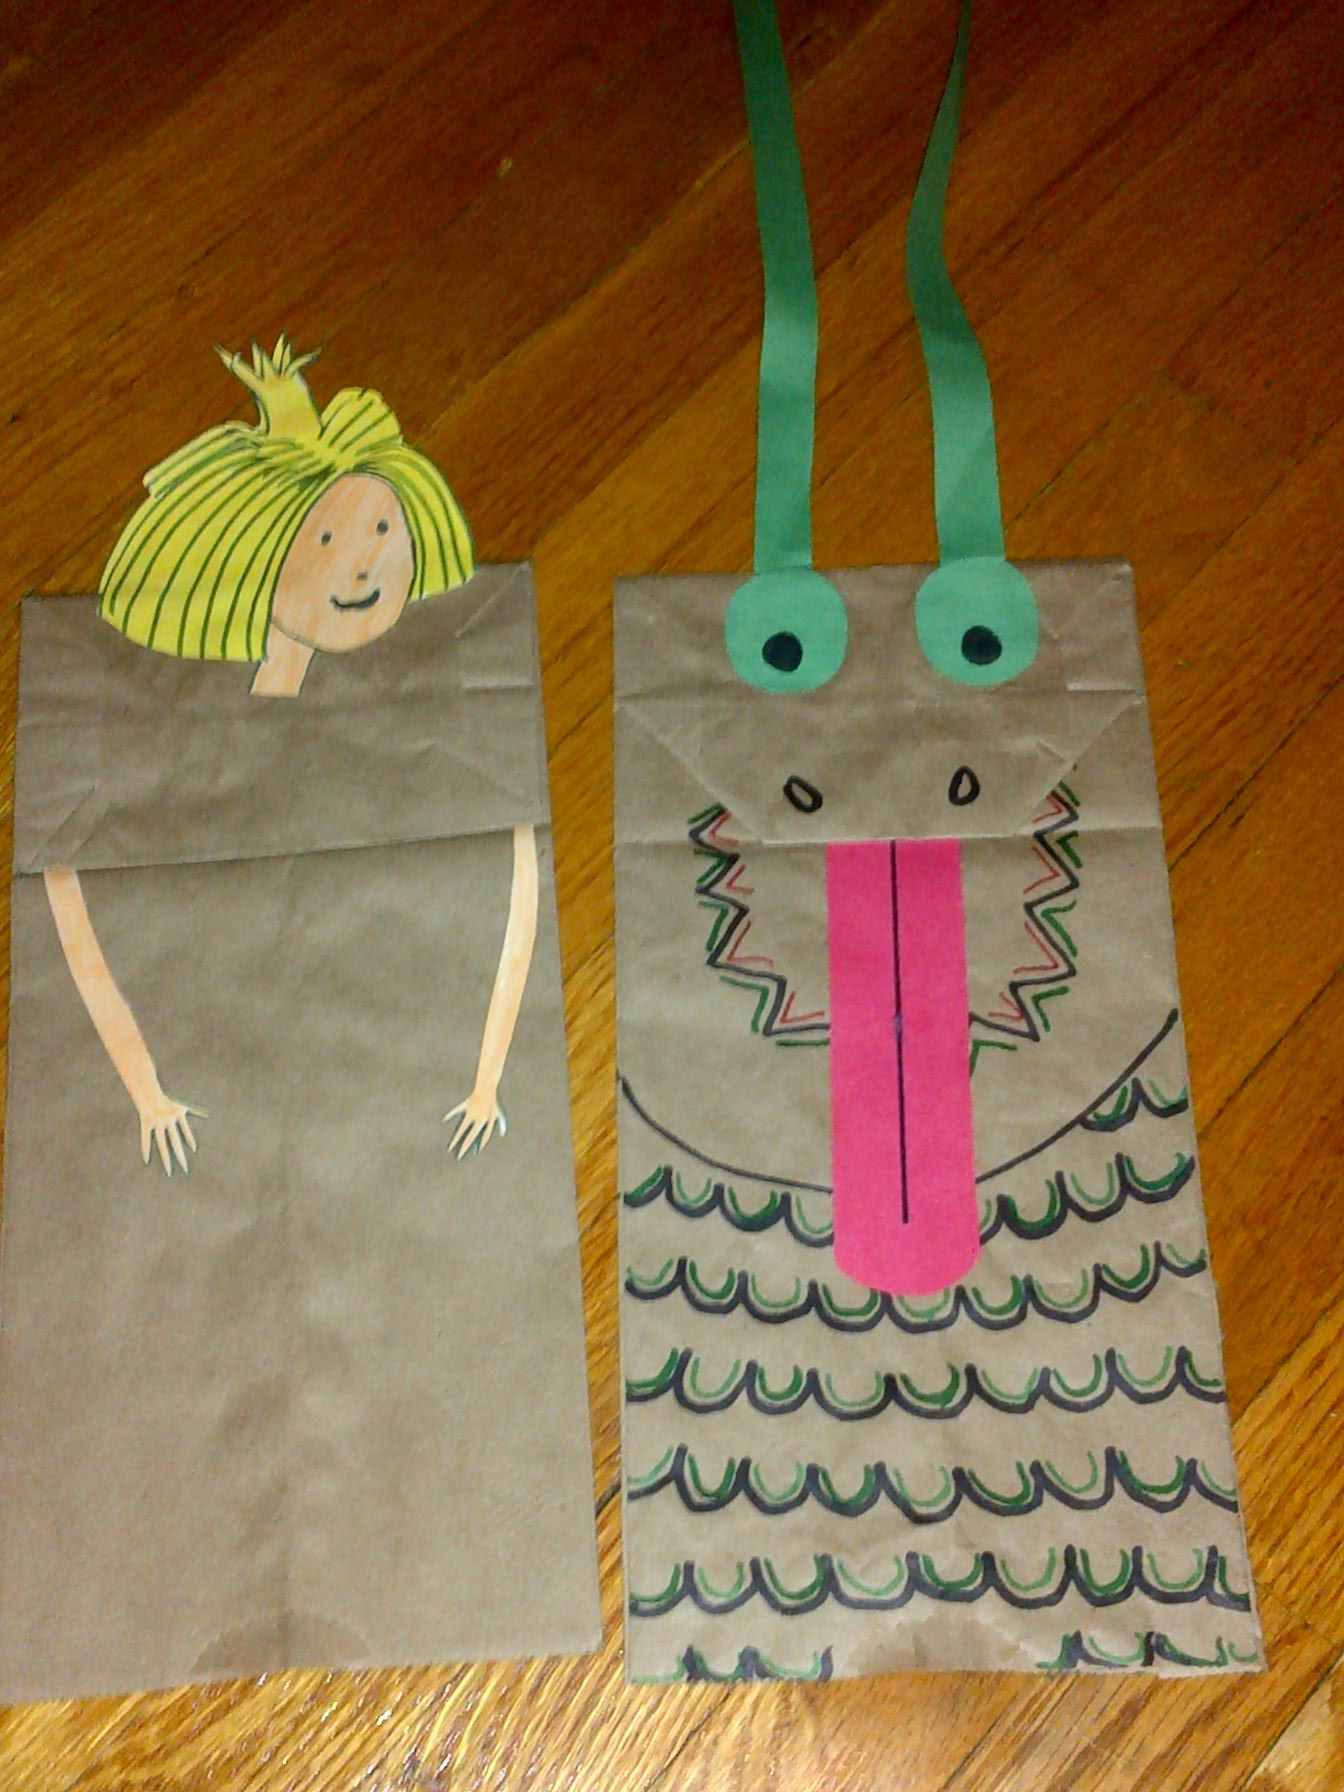 Paper Bag Princess Paper Bag Puppets I Got The Templates For The